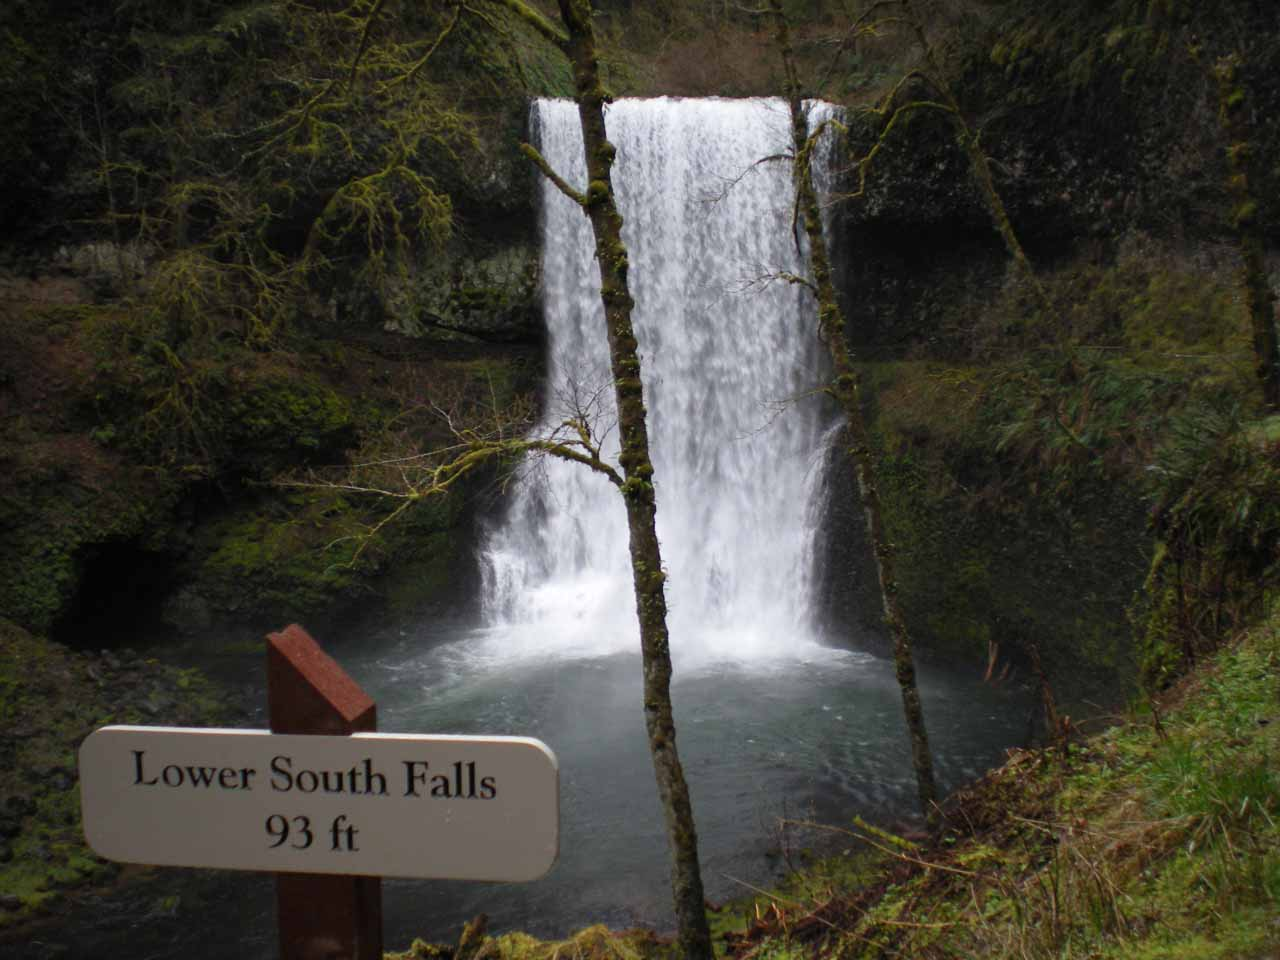 Sign fronting Lower South Falls stating its height